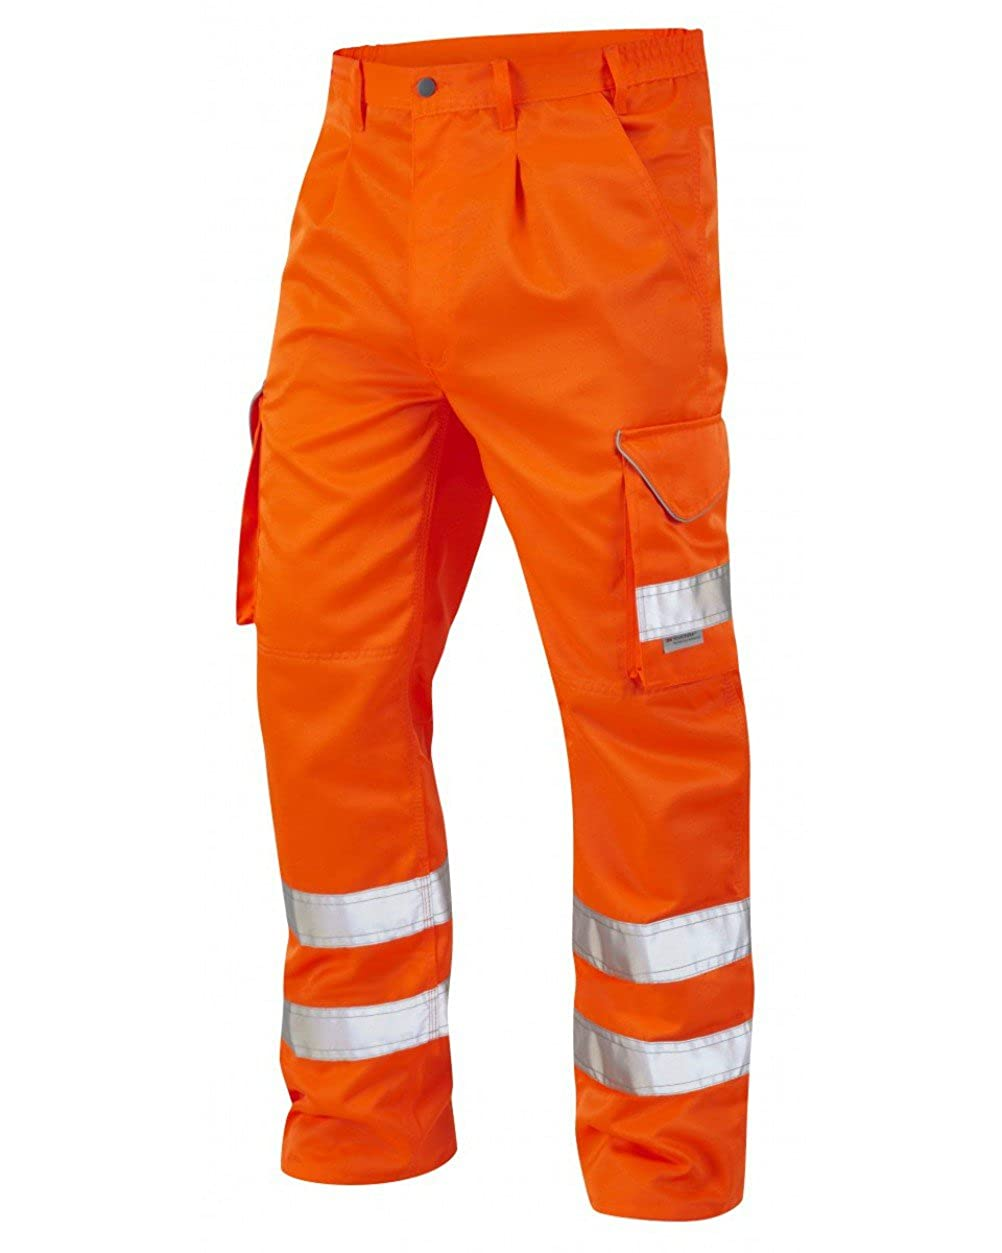 Leo Workwear Hi VIS Cargo High Visibility Bideford Polycotton Work Trouser In Orange and Yellow 28'-56' Style : CT01